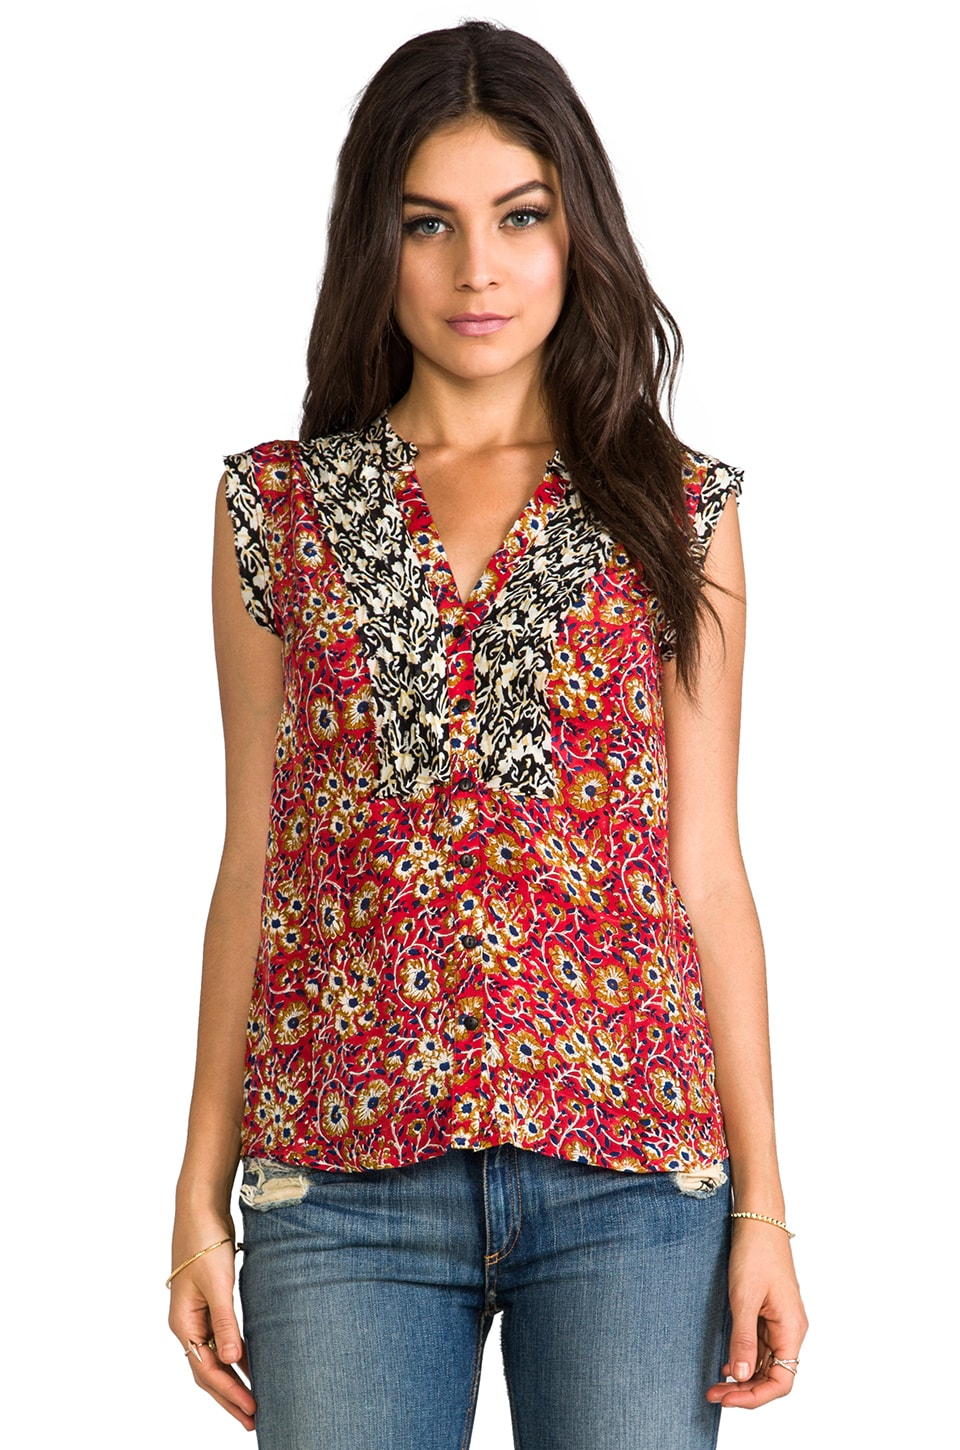 Tolani Jillian Tank in Red Floral